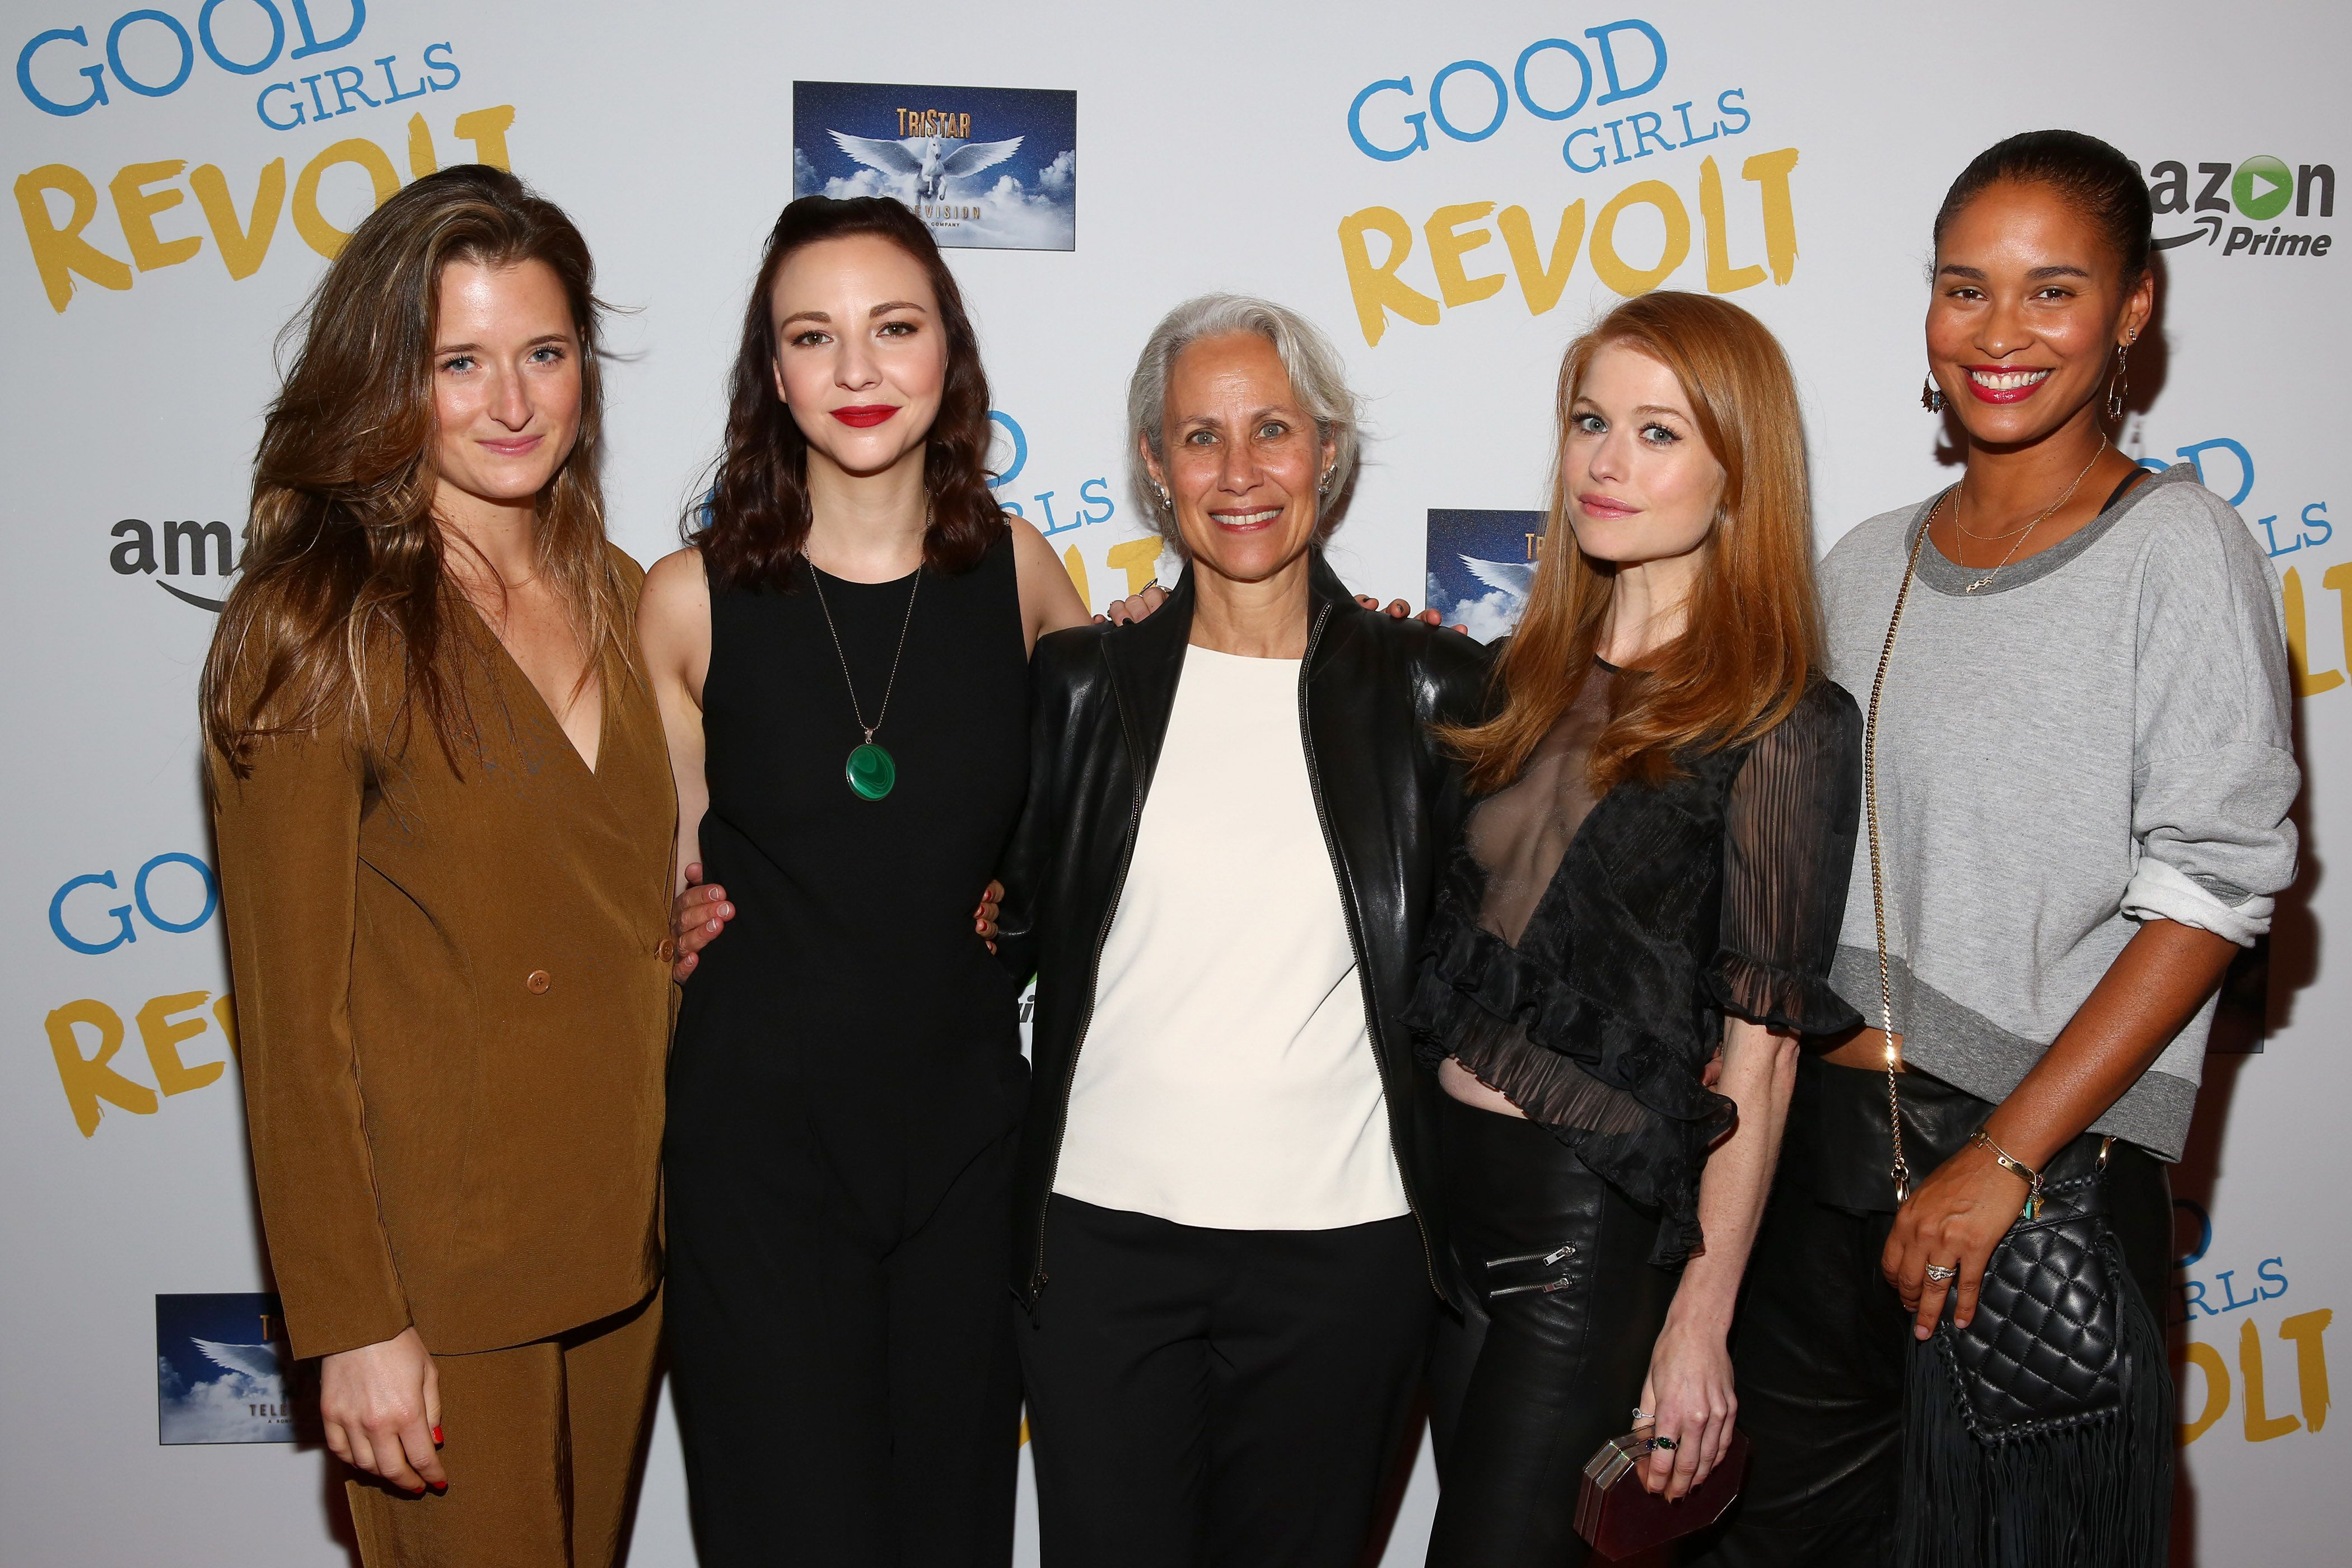 NEW YORK - NOVEMBER 04:  (L-R) Grace Gummer, Erin Darke, author Lynn Povich,Genevieve Angelson, Joy Bryant attend 'Good Girls Revolt' preview night screening, NYC hosted by TriStar Television at Roxy Hotel on November 4, 2015 in New York City.  (Photo by Astrid Stawiarz/Getty Images for Sony)